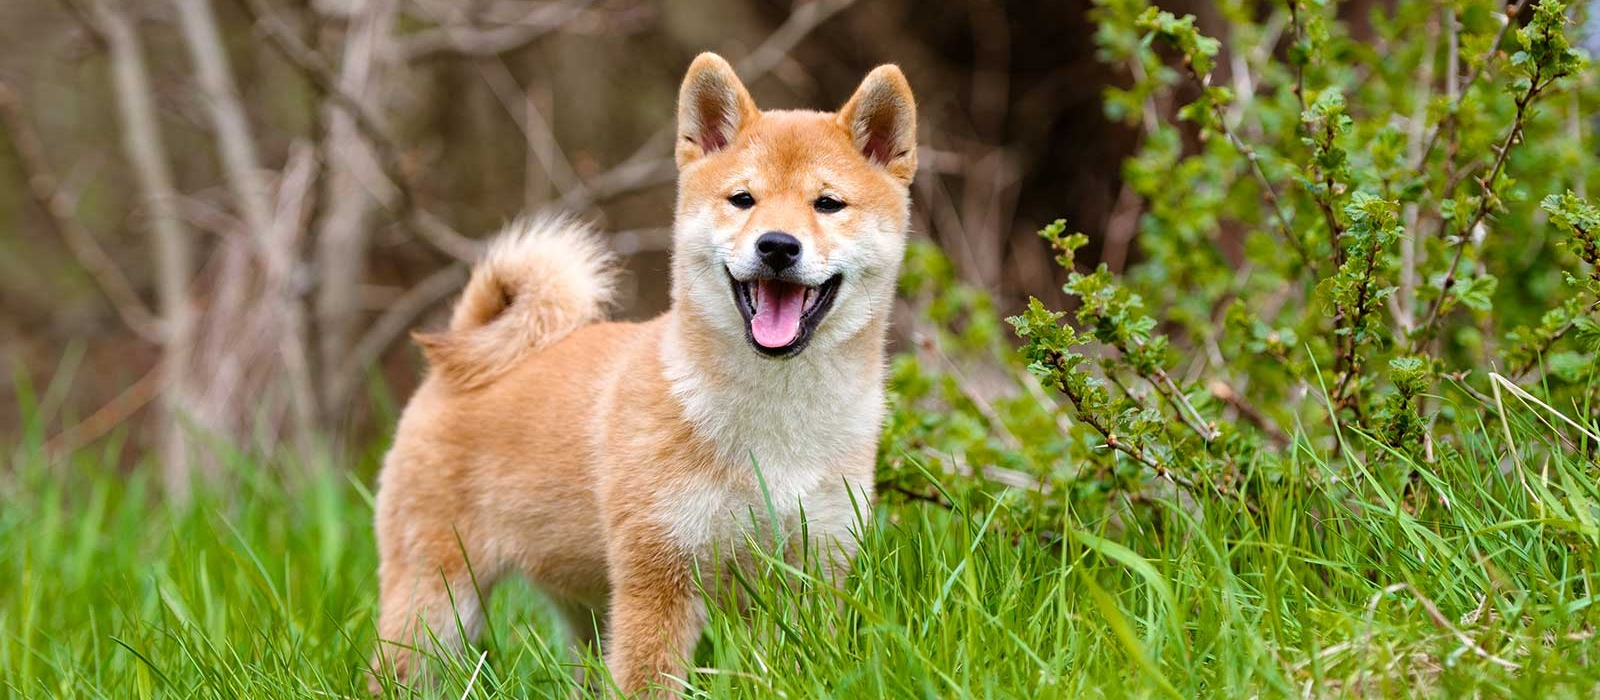 Shiba Inu Puppies For Sale - Shiba Inu Breed Profile | Greenfield